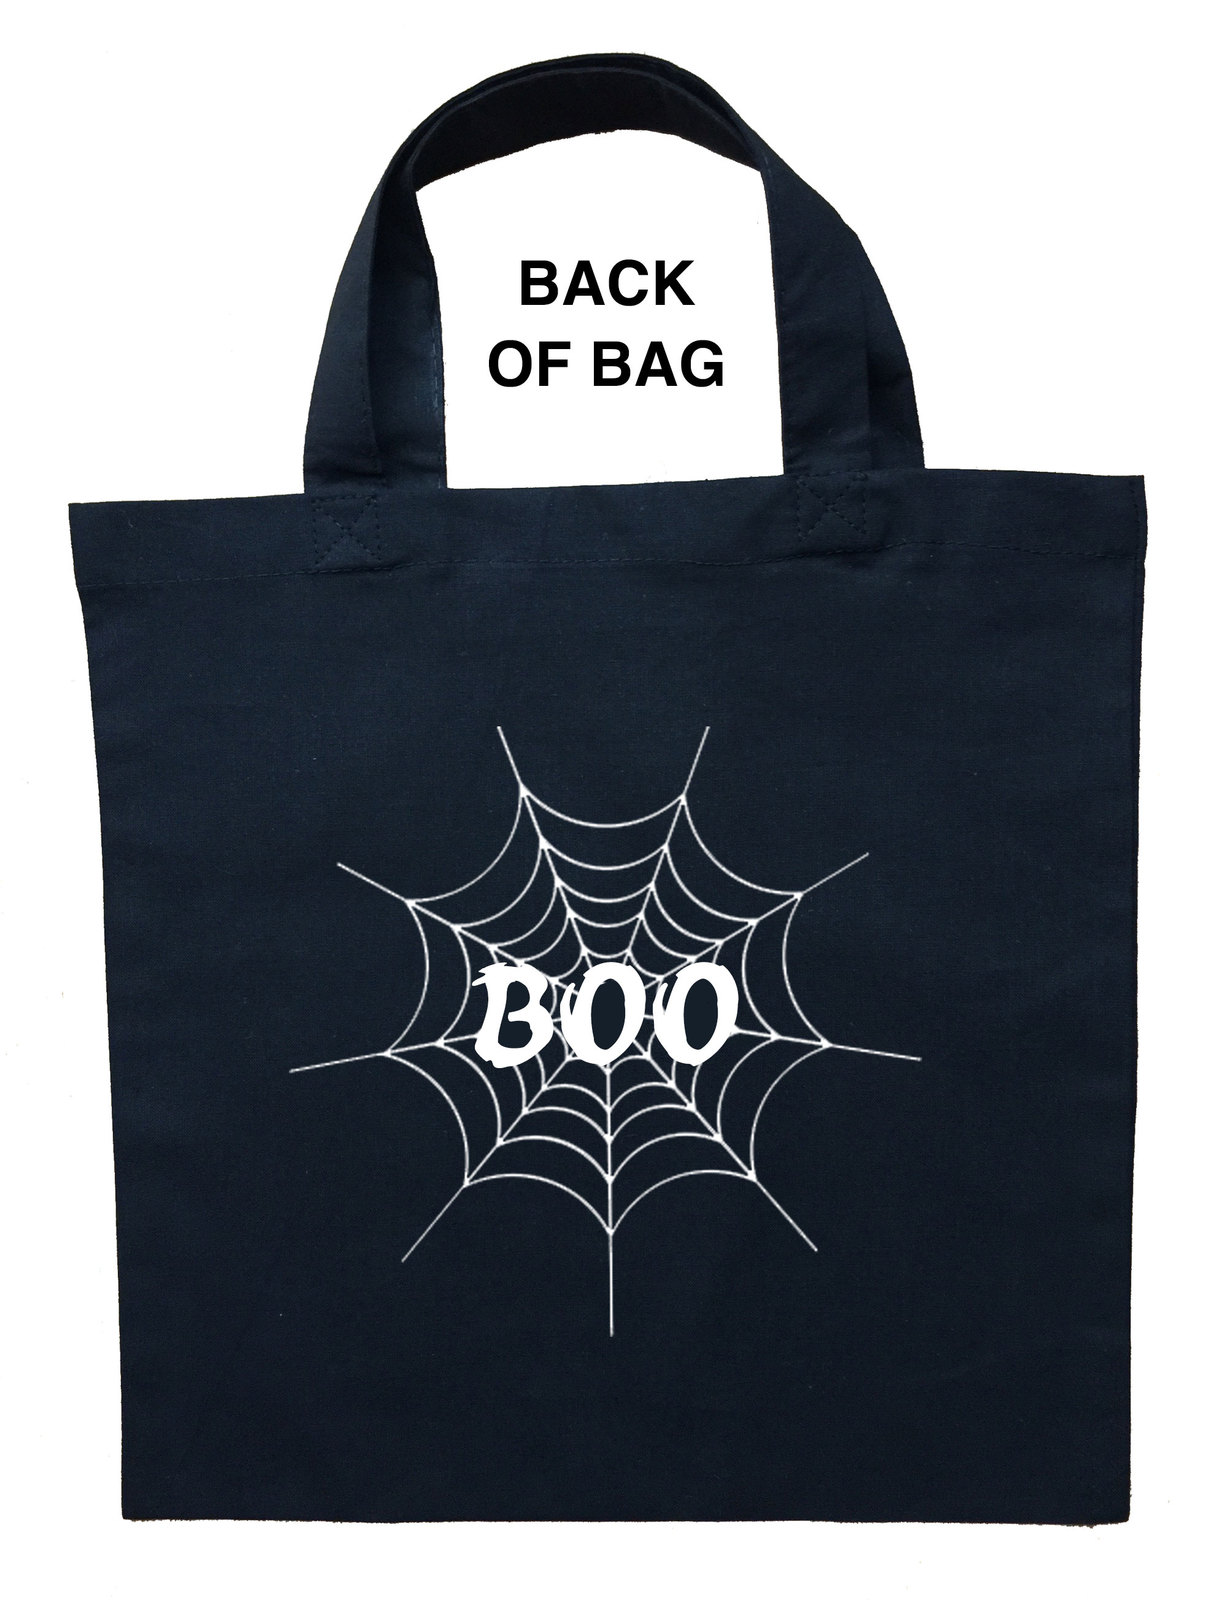 Spider Trick or Treat Bag, Personalized Spider Halloween Bag, Spider Loot Bag